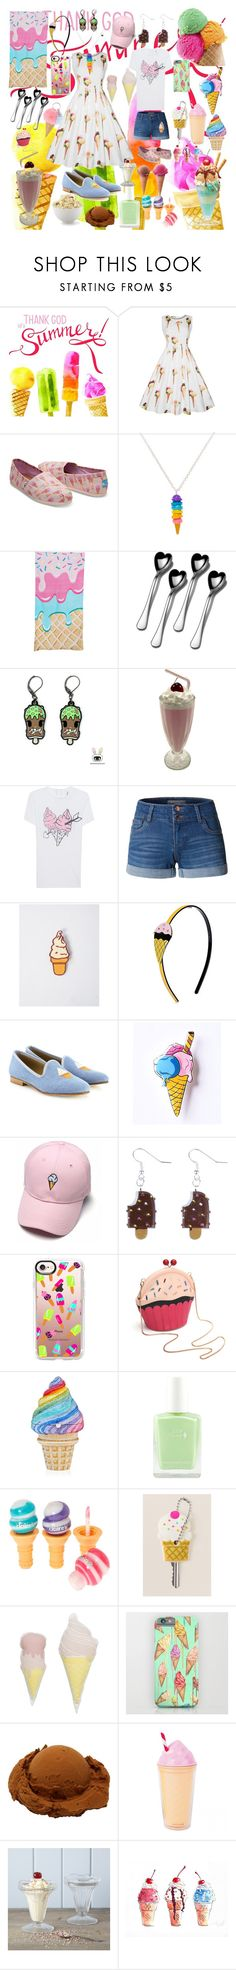 """""""For the love of ice cream!"""" by fandom-girl365790 ❤ liked on Polyvore featuring TOMS, Towle, Zoe Karssen, LE3NO, Ana Accessories, Del Toro, Casetify, Natural Life, Bloomingville and Rigby & Mac"""